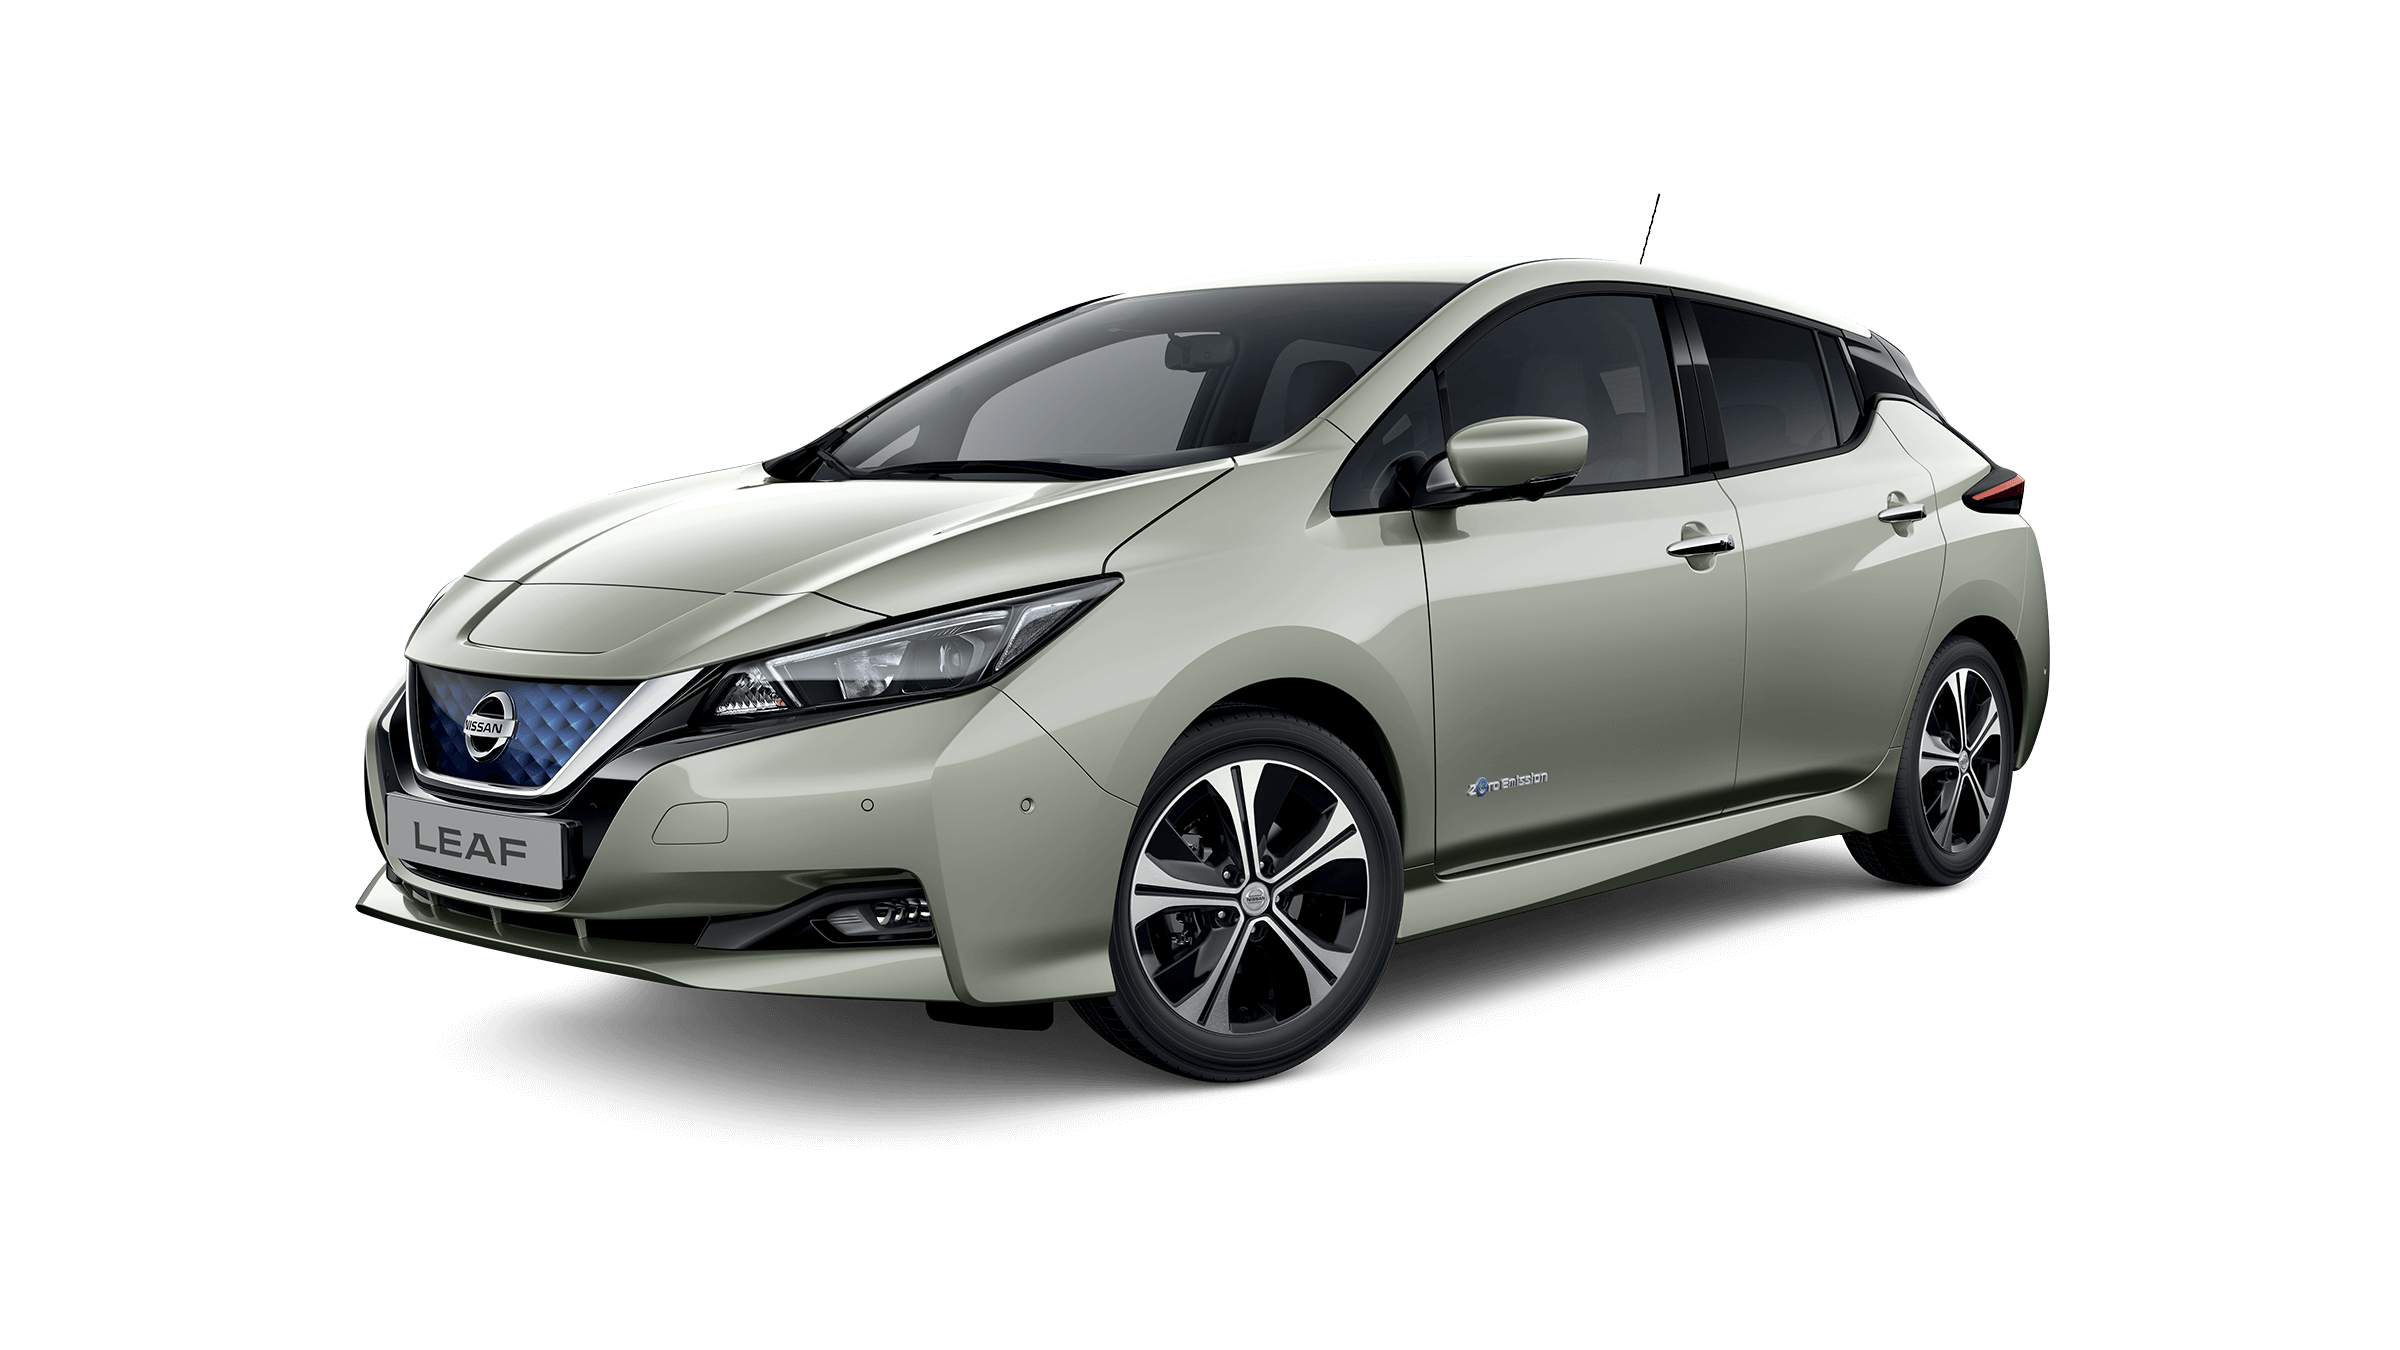 38 The Best Nissan Leaf 2019 60 Kwh Release Date And Concept